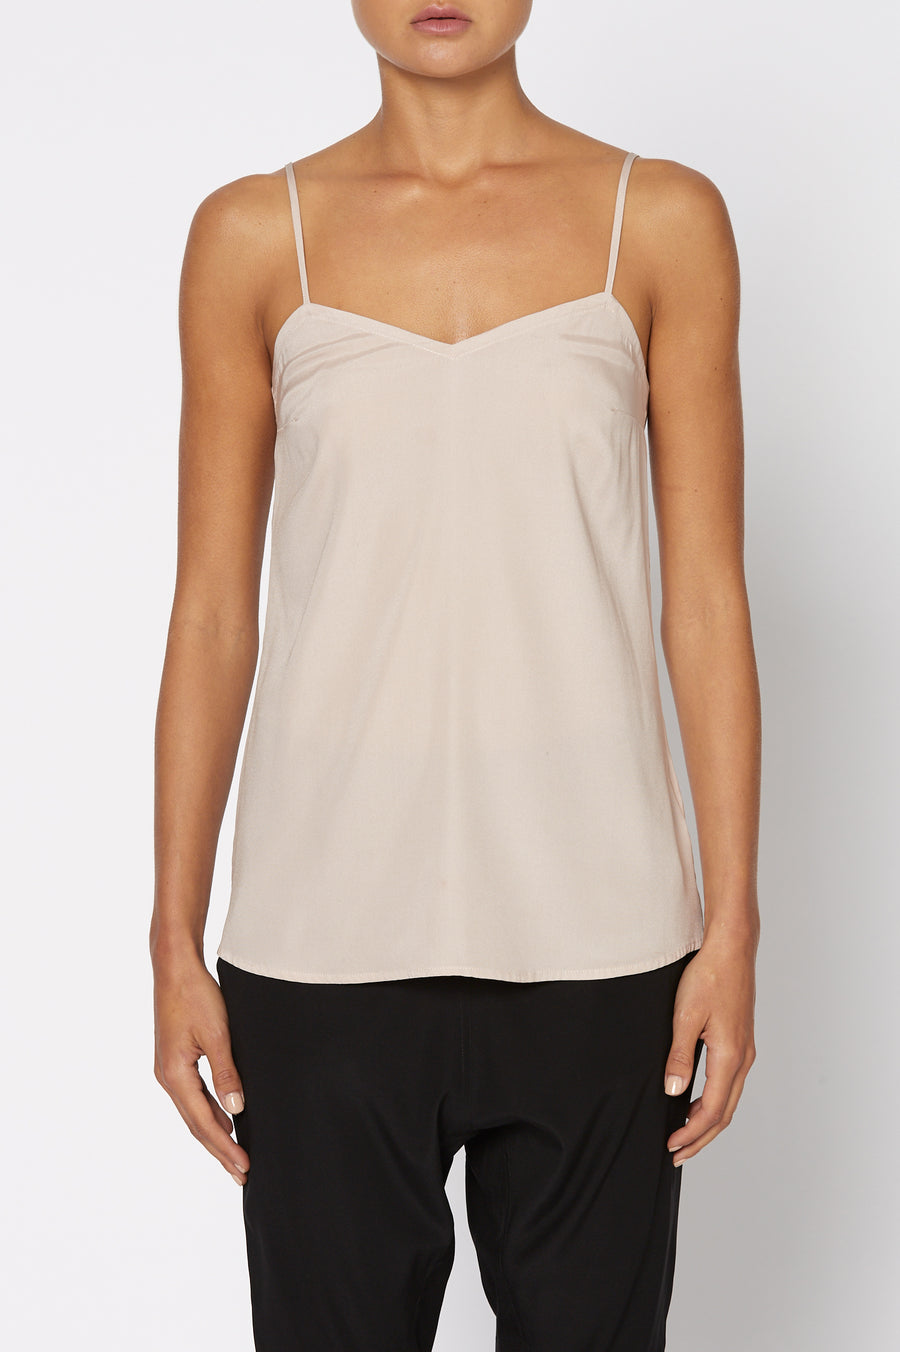 SHOESTRING CAMISOLE, loose fit and features a v-neckline, shoestring shoulder straps, Color Pale Pink